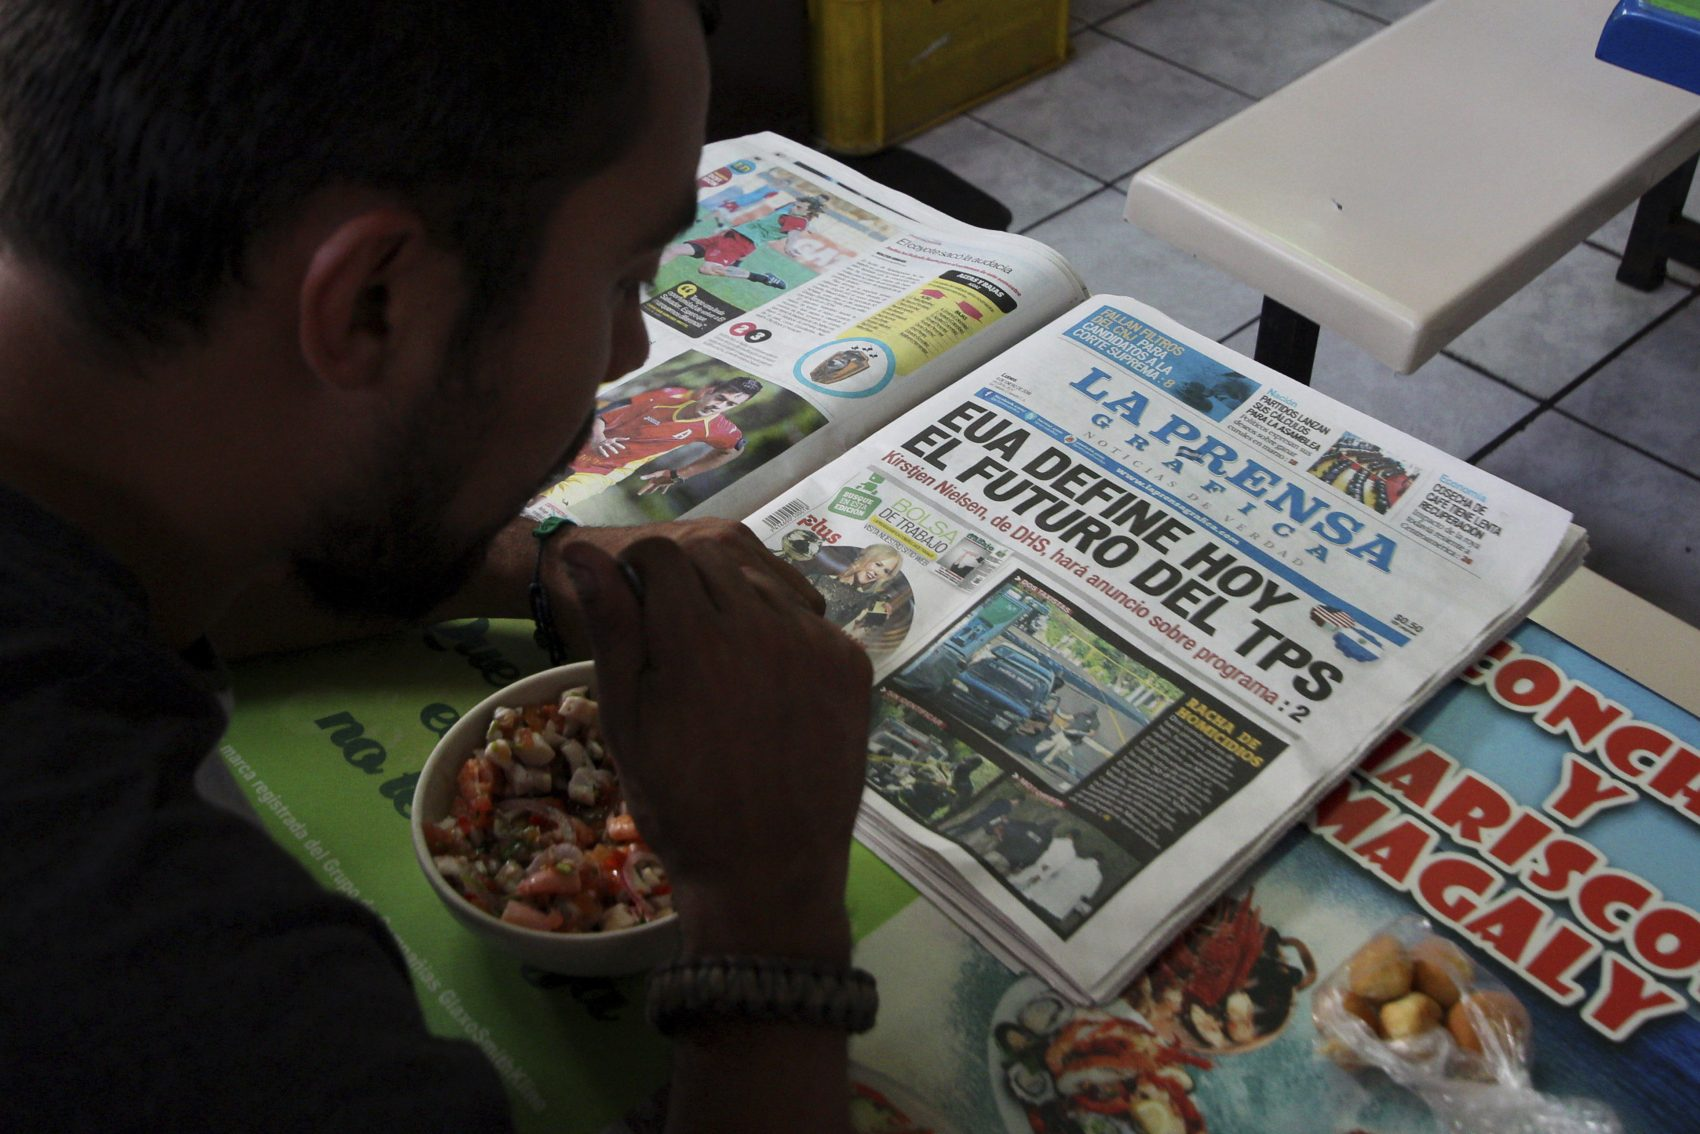 """Mario Escalante reads a newspaper during lunch at a local market in San Salvador, El Salvador, Monday, Jan. 8, 2018. The U.S. administration announced that it will end the temporary protected status that has allowed some 200,000 people from El Salvador to stay legally in the United States for nearly 17 years, the Department of Homeland Security, DHS, said Monday. The newspaper headline reads in Spanish """"The United States will decide today the future of TPS."""" (Salvador Melendez/AP)"""